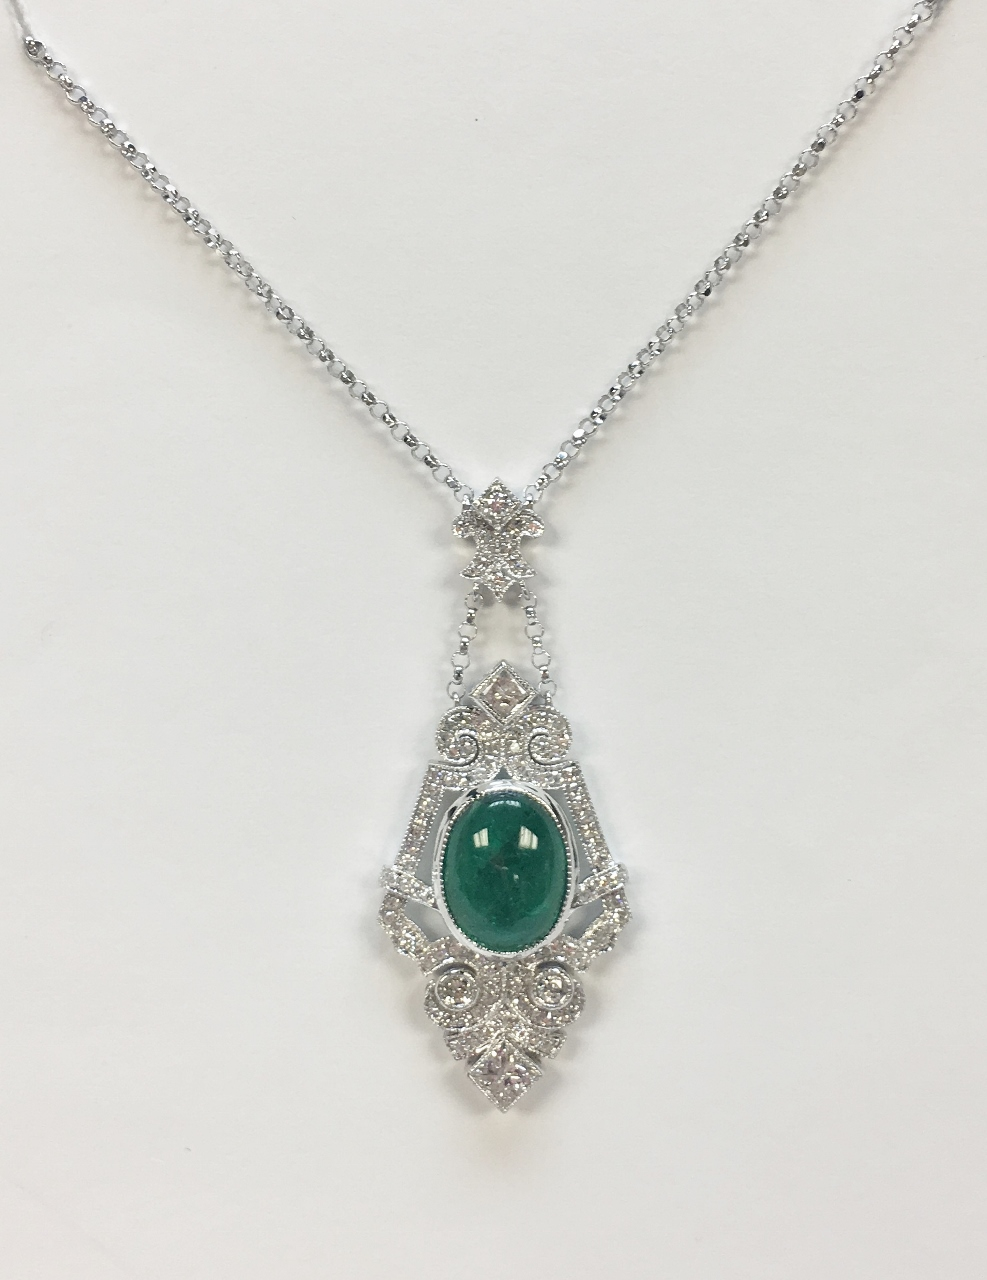 18K White Gold Antique Style 3.70 Carats Emerald Necklace